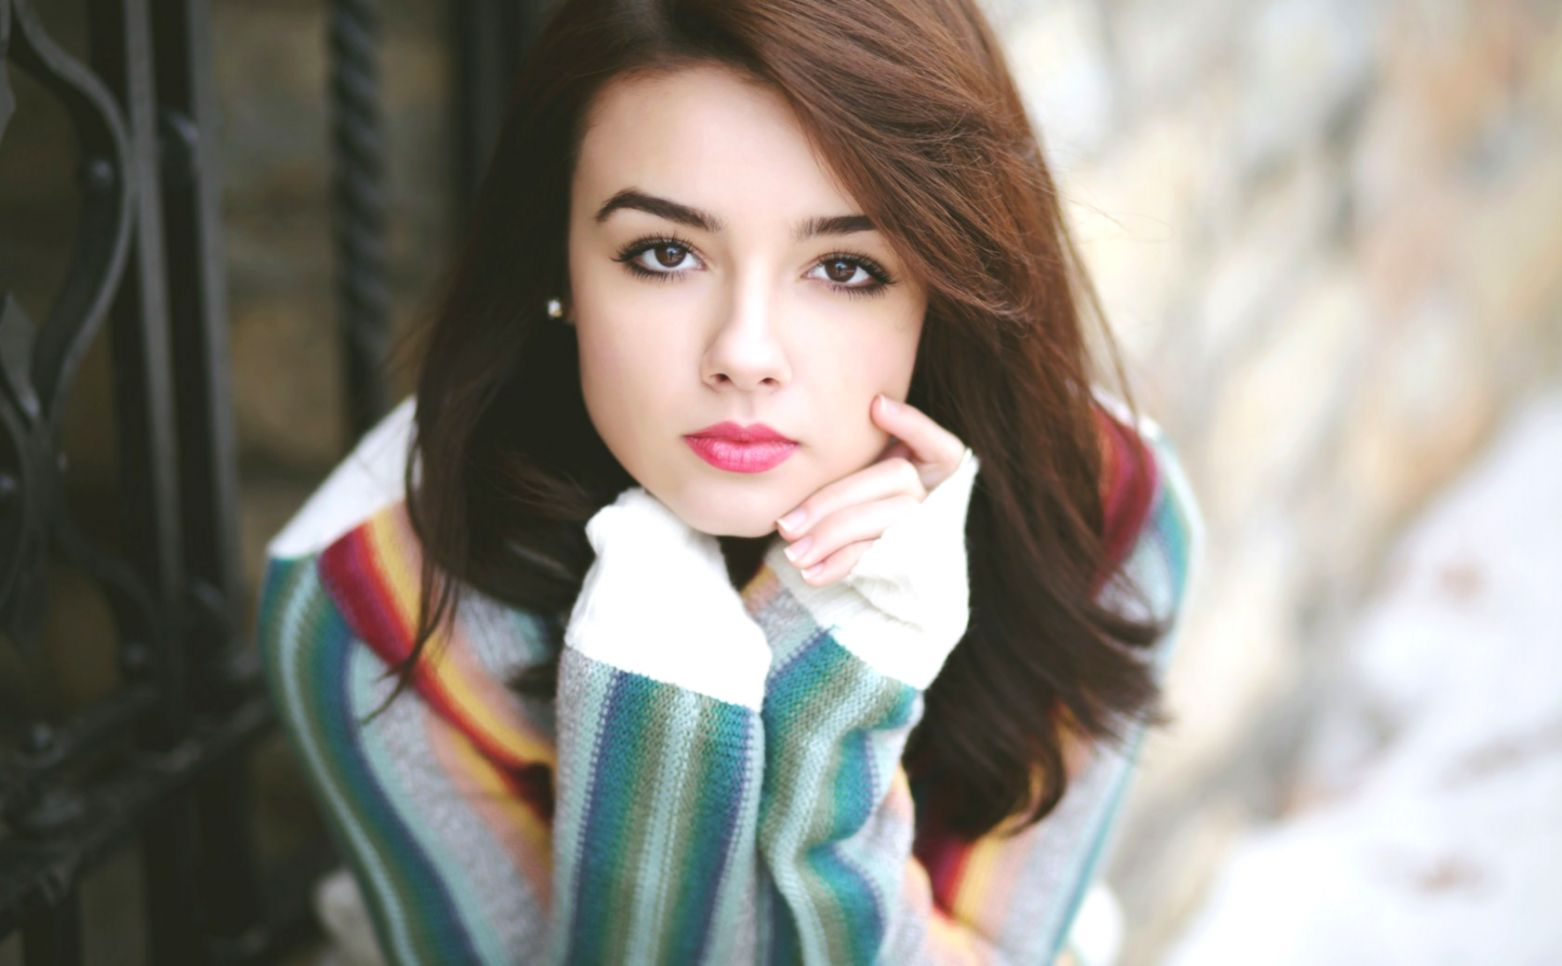 Cool Pictures Beautiful Girl Hd Wallpaper Wallpapers For Fun